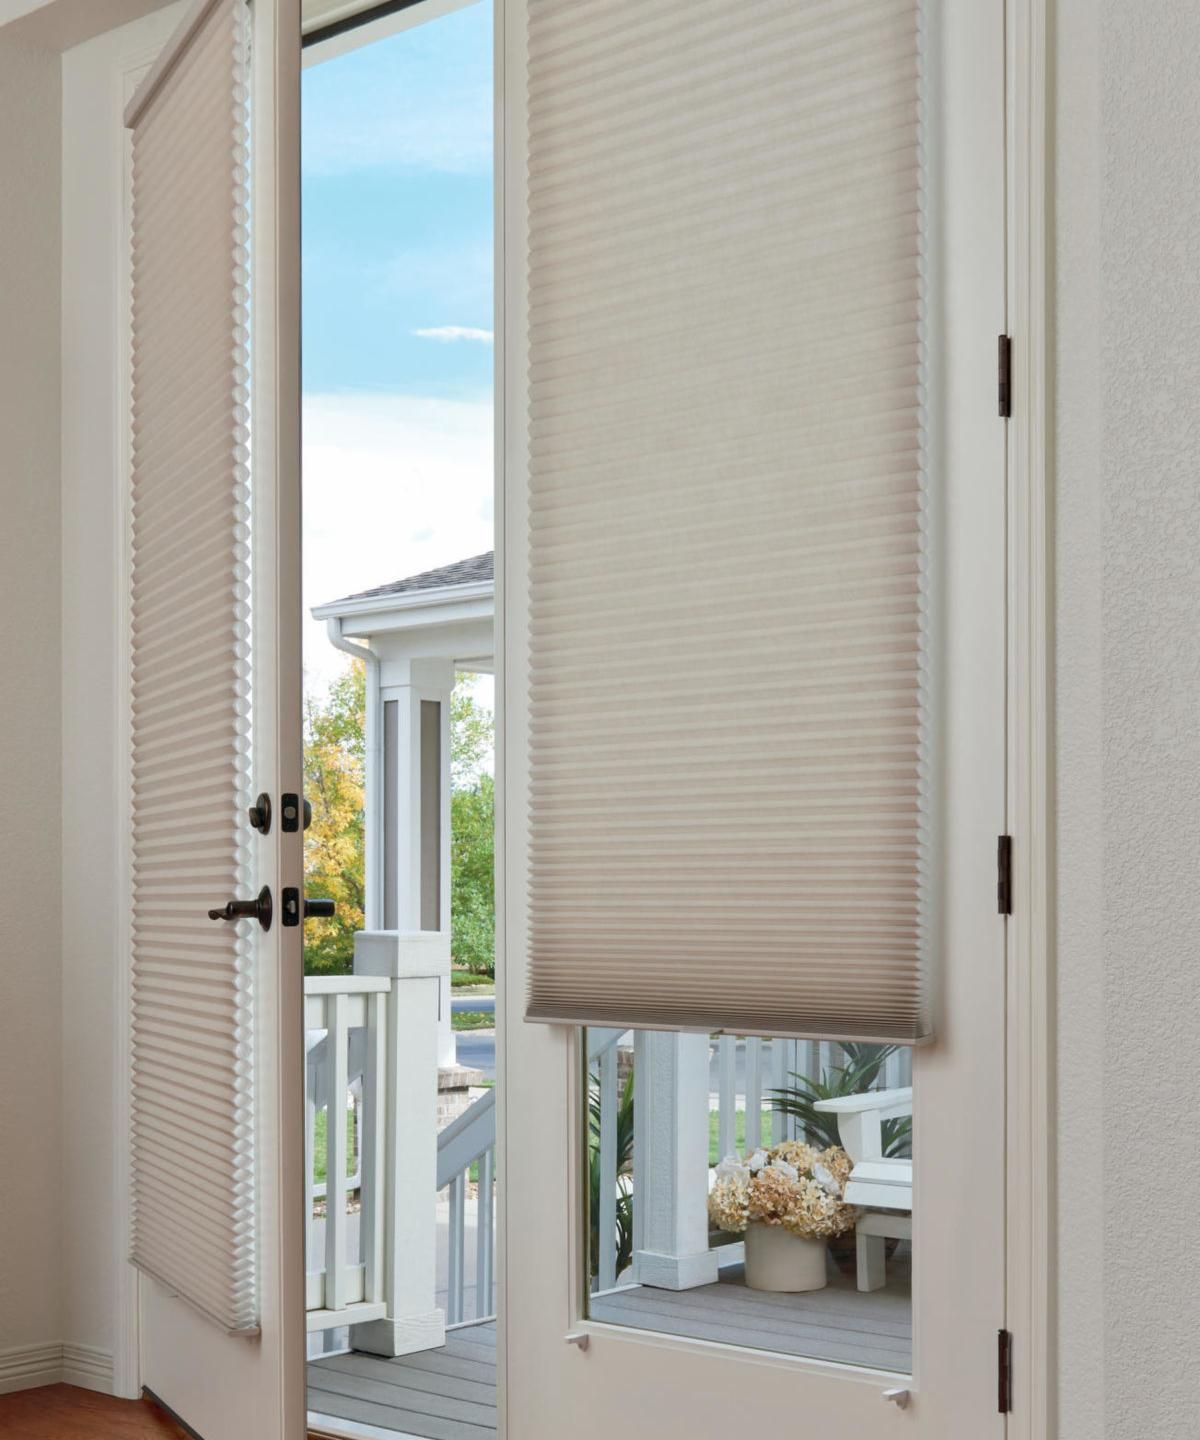 These Duette Honeycomb Shades In Birch Bark Are The Original Cellular Shades French Door Window Treatments Door Window Treatments Sliding Glass Door Window